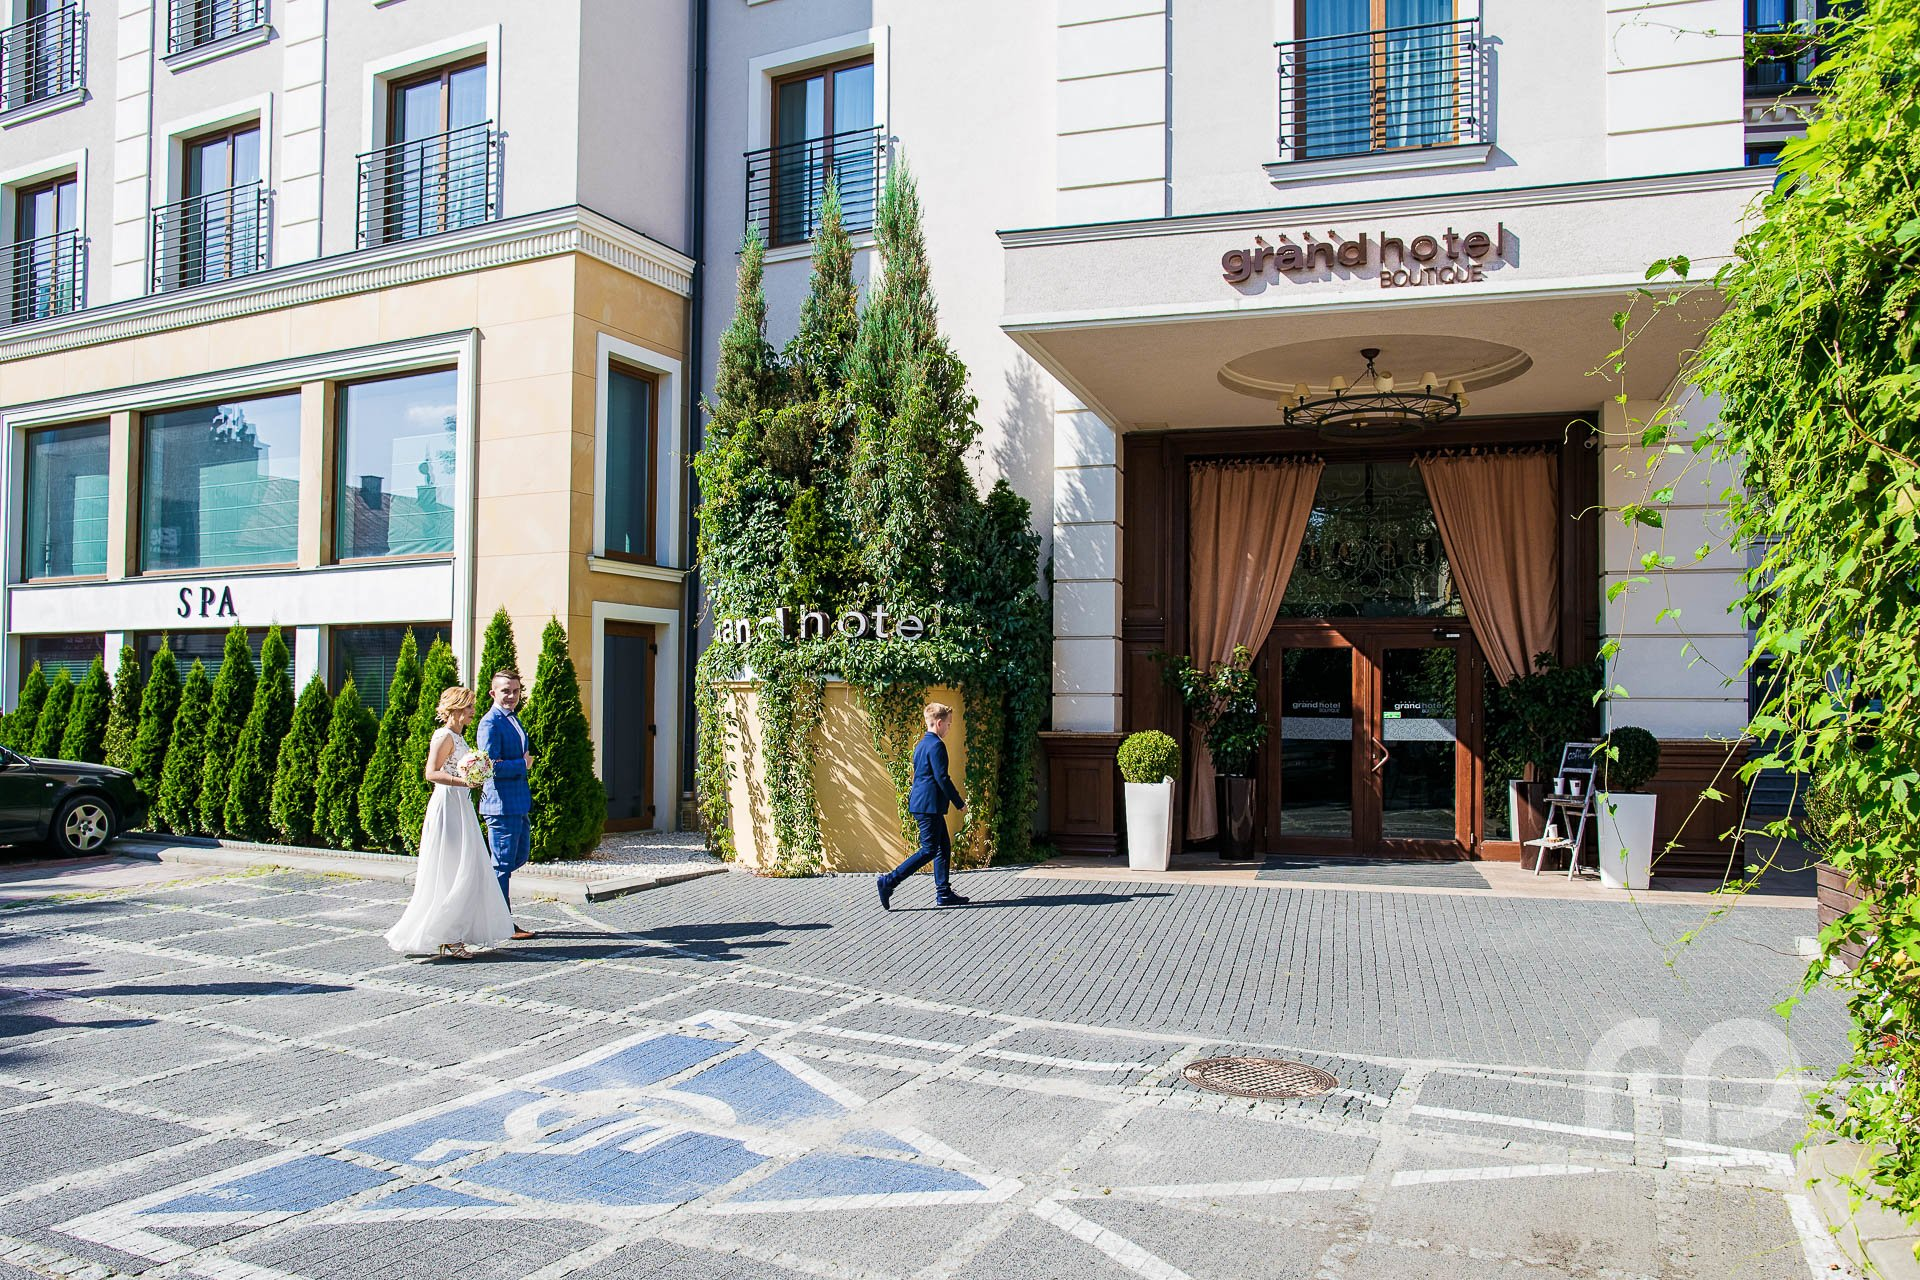 Grand Hotel Boutique Rzeszów